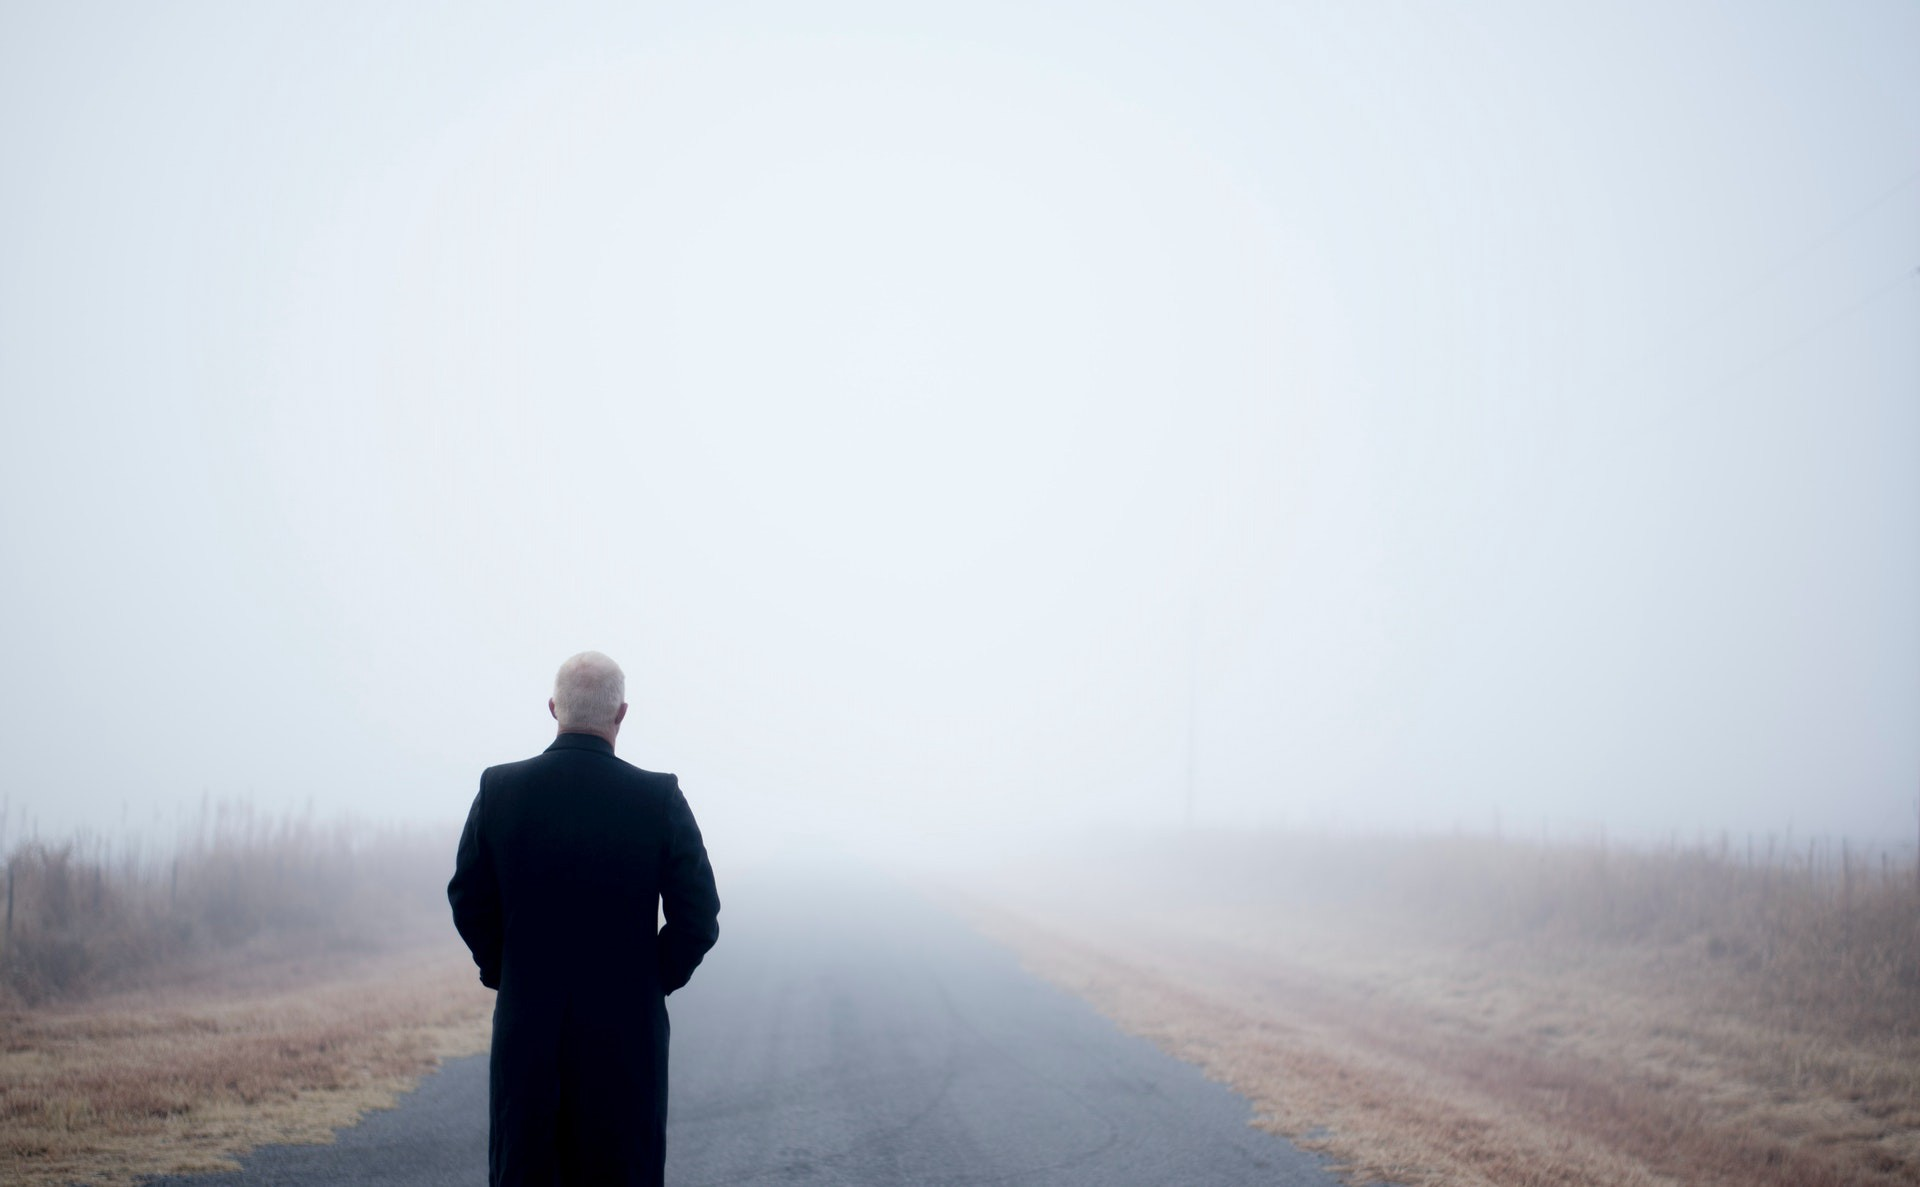 Man looking out at a foggy road